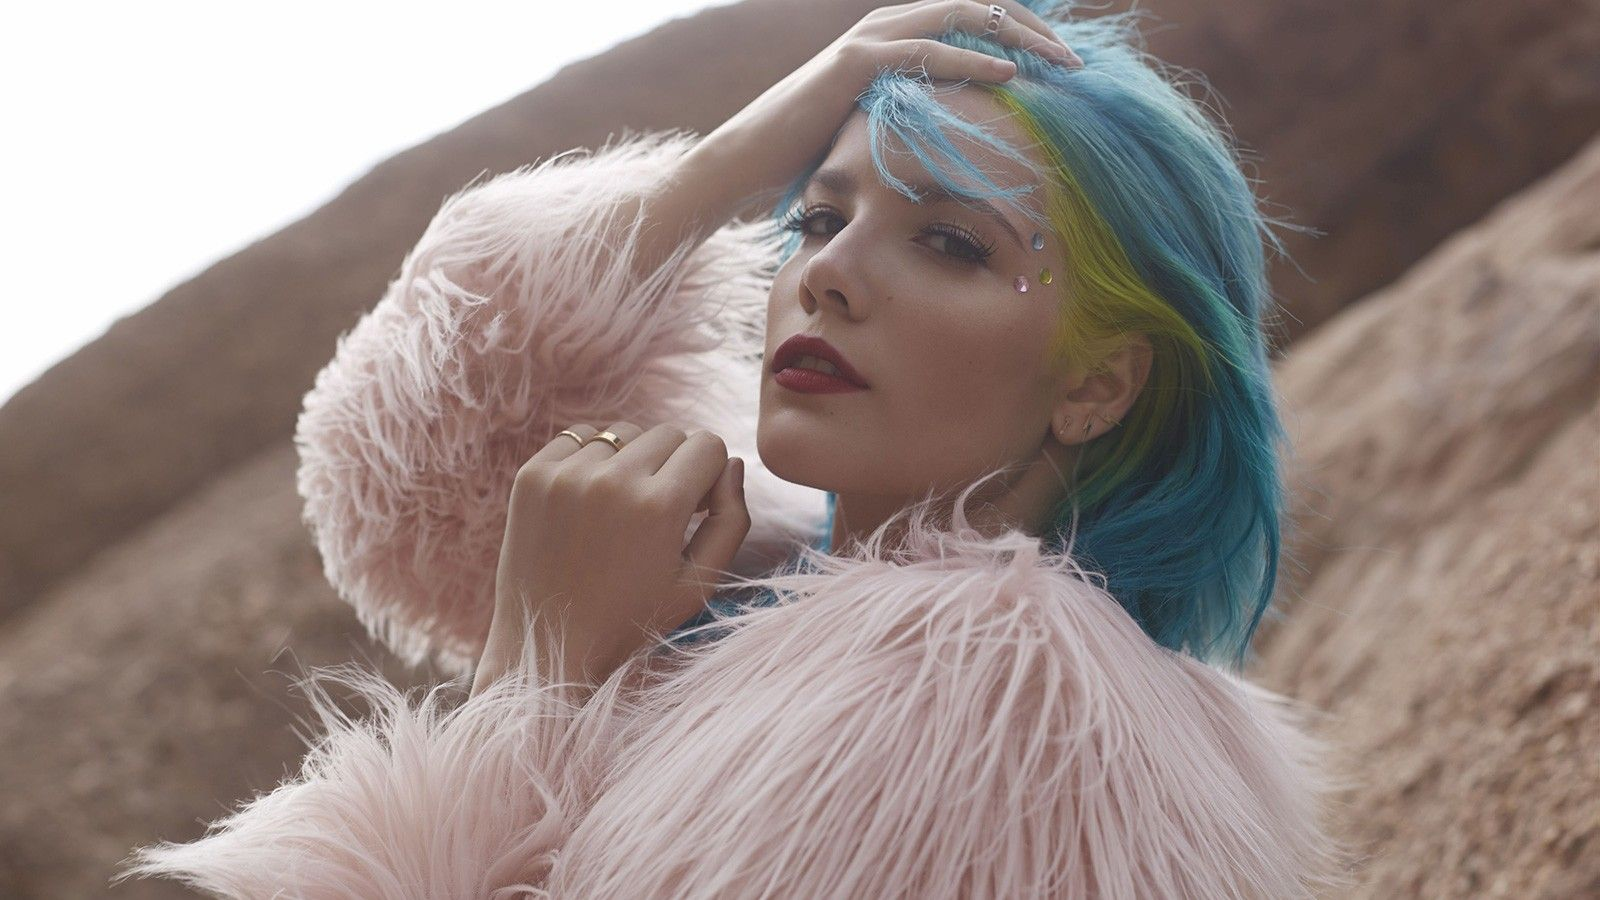 Halsey performs 'New Americana' and a cover of The 1975's 'The ...